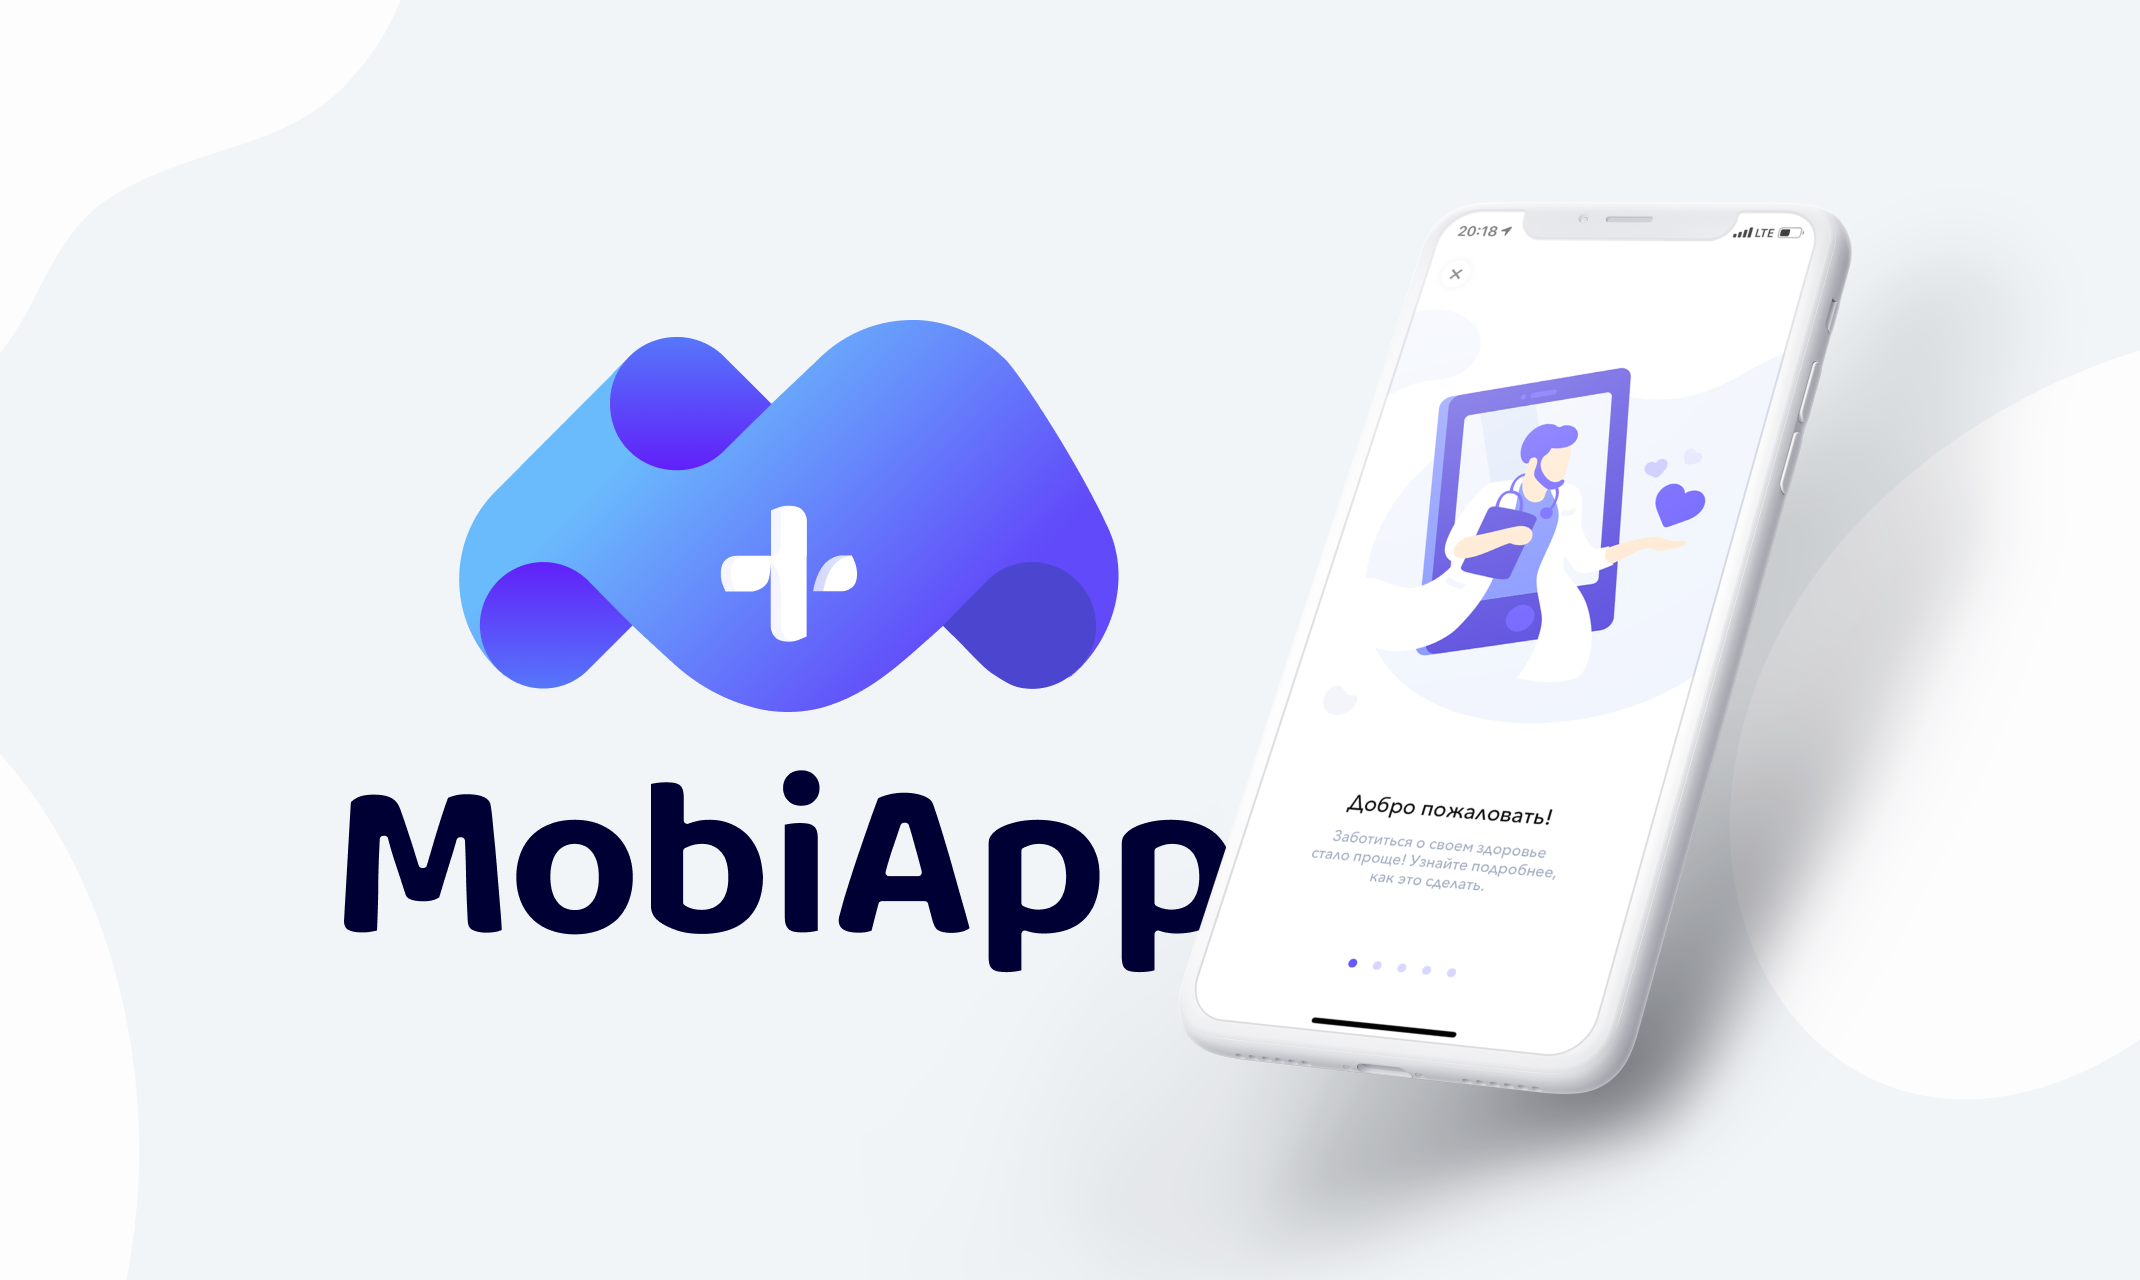 MobiApp Брендинг